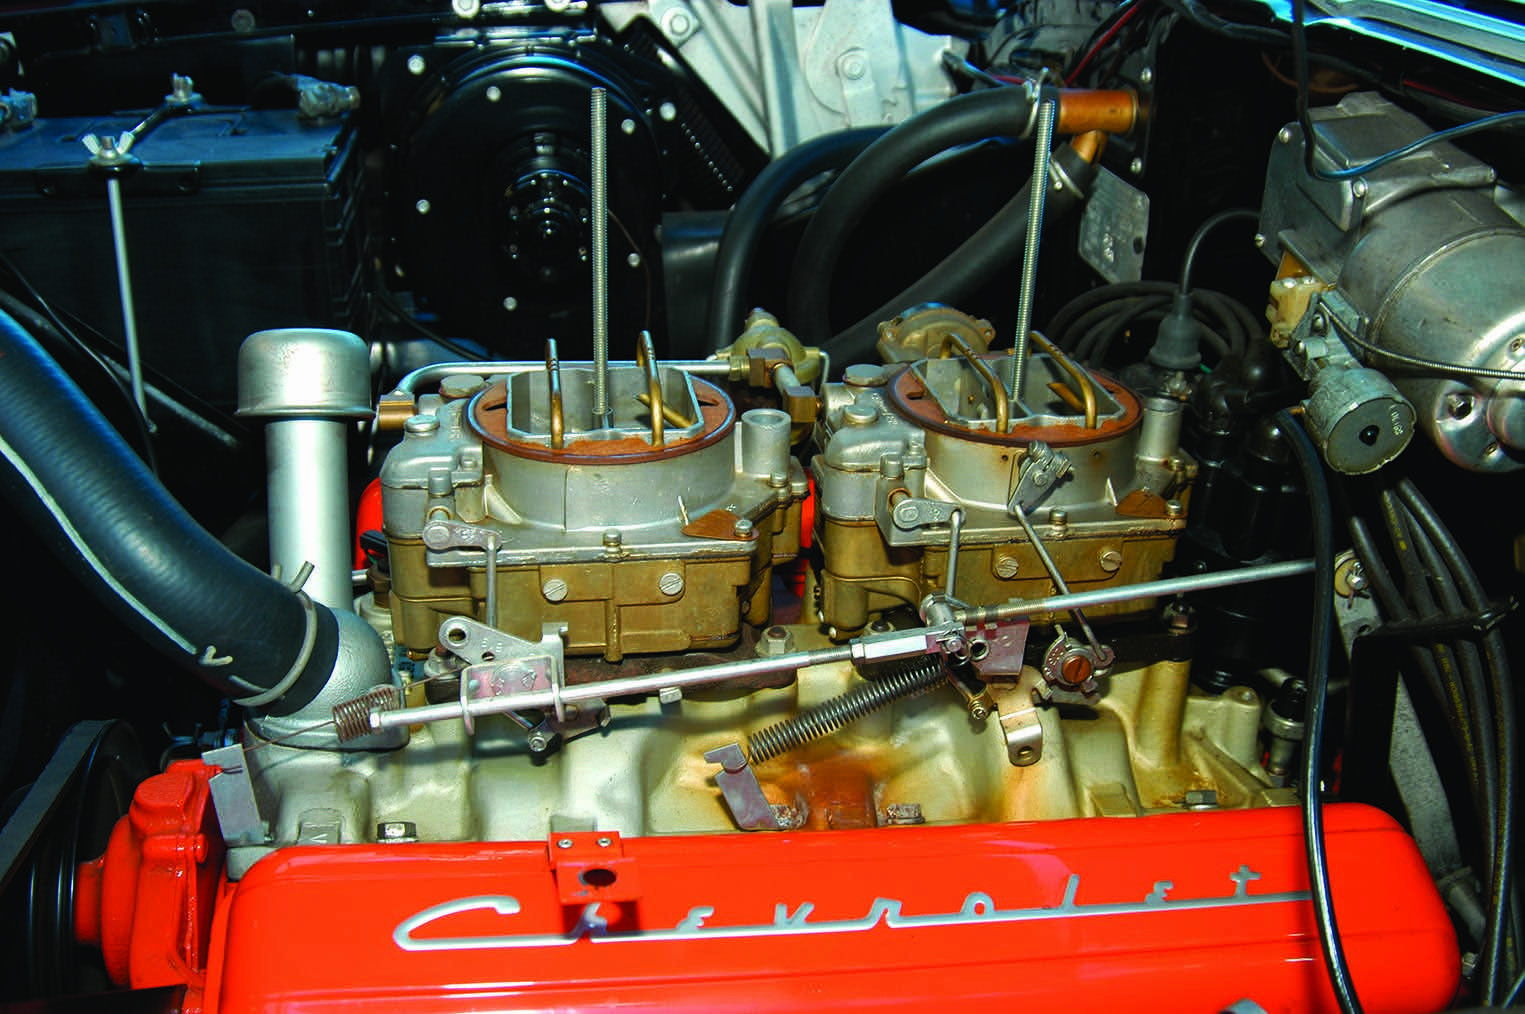 1957 Chevy engine close up